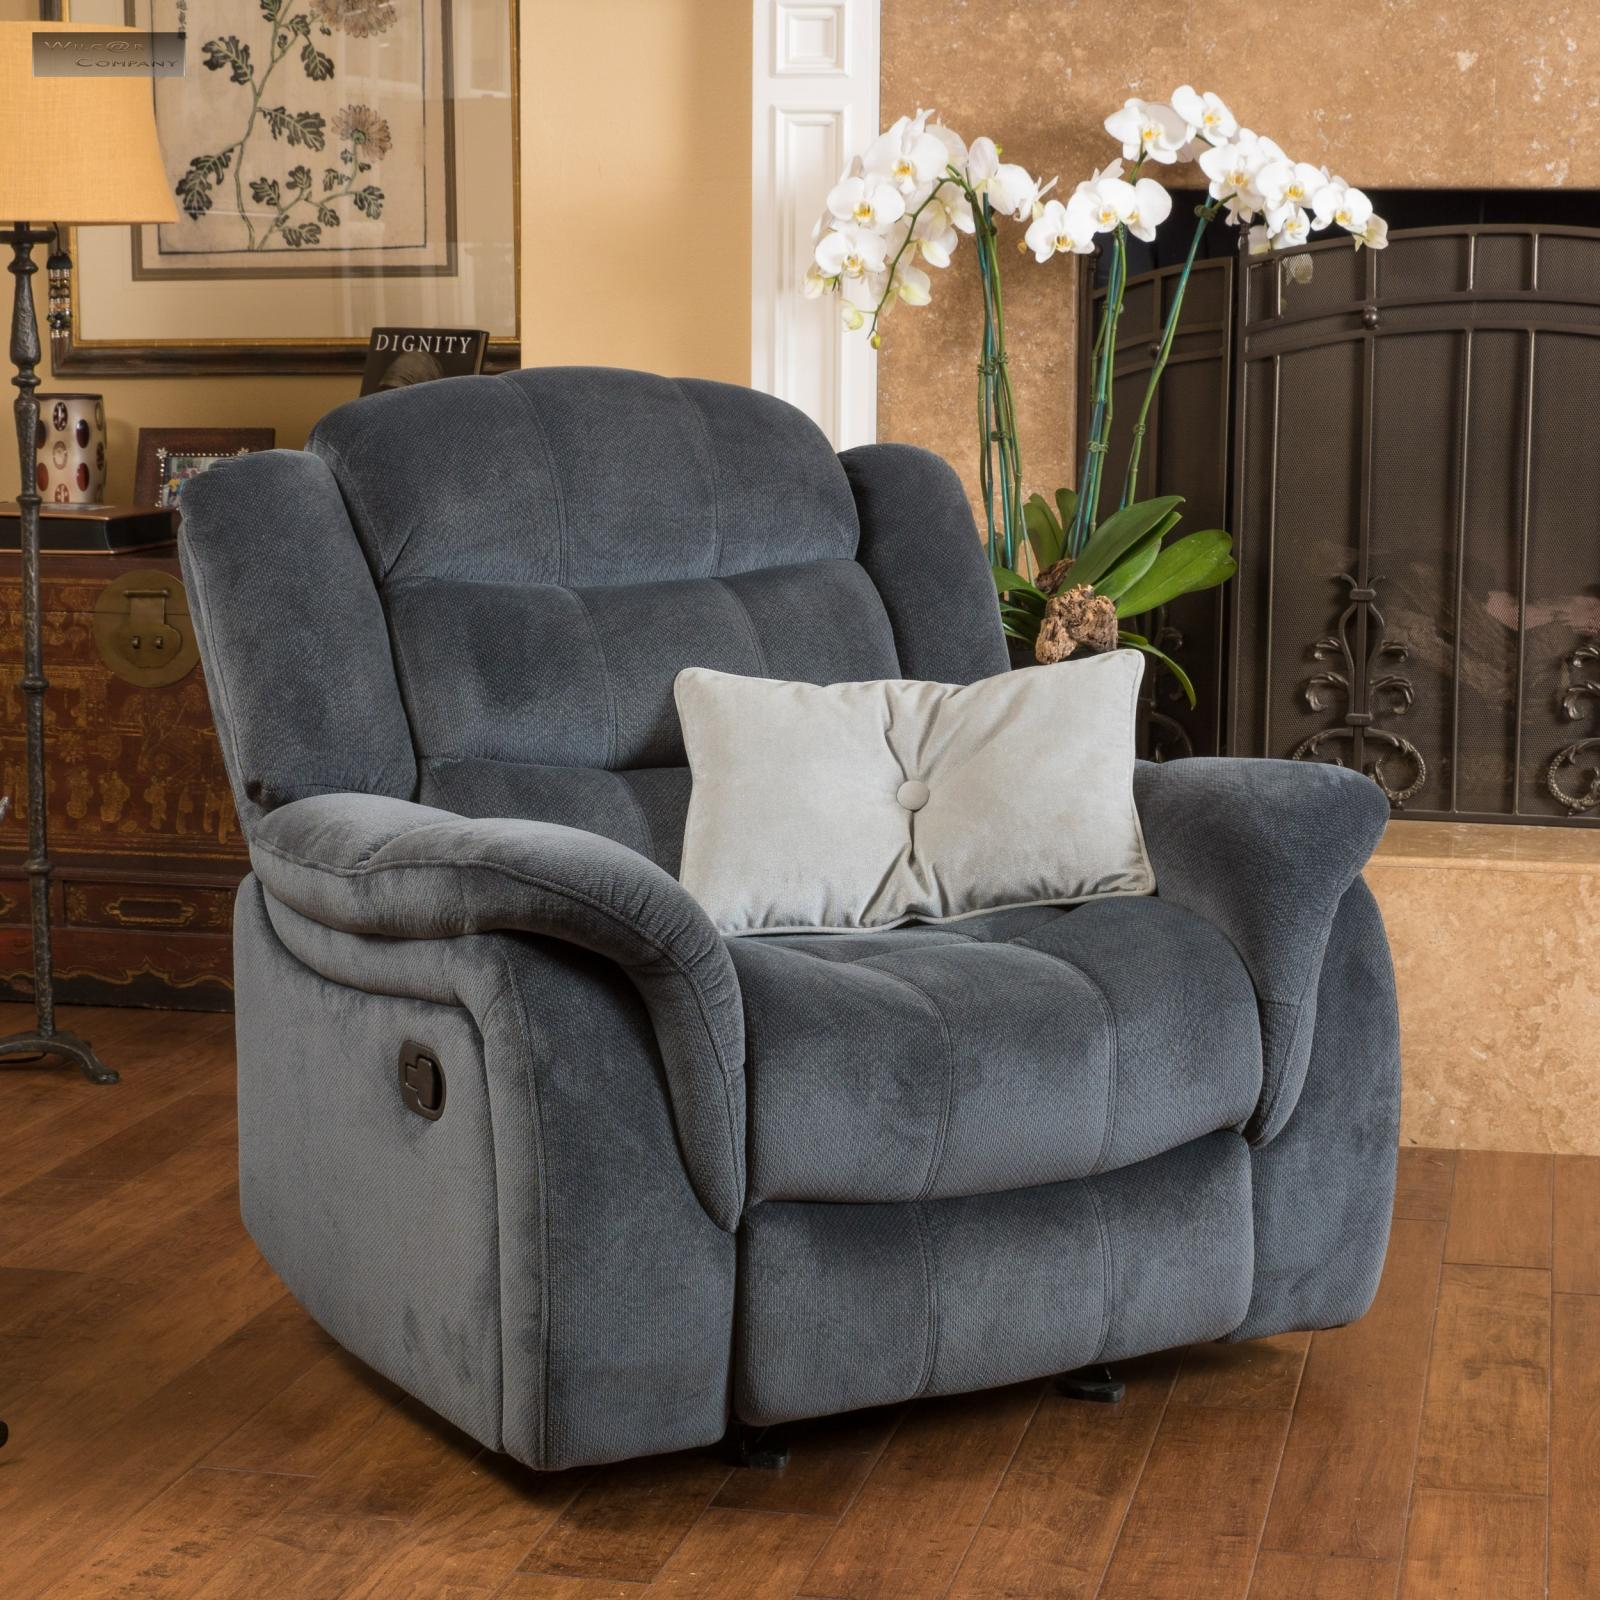 Grey Fabric Recliner Glider Lazy Chair Reclining Seat ...